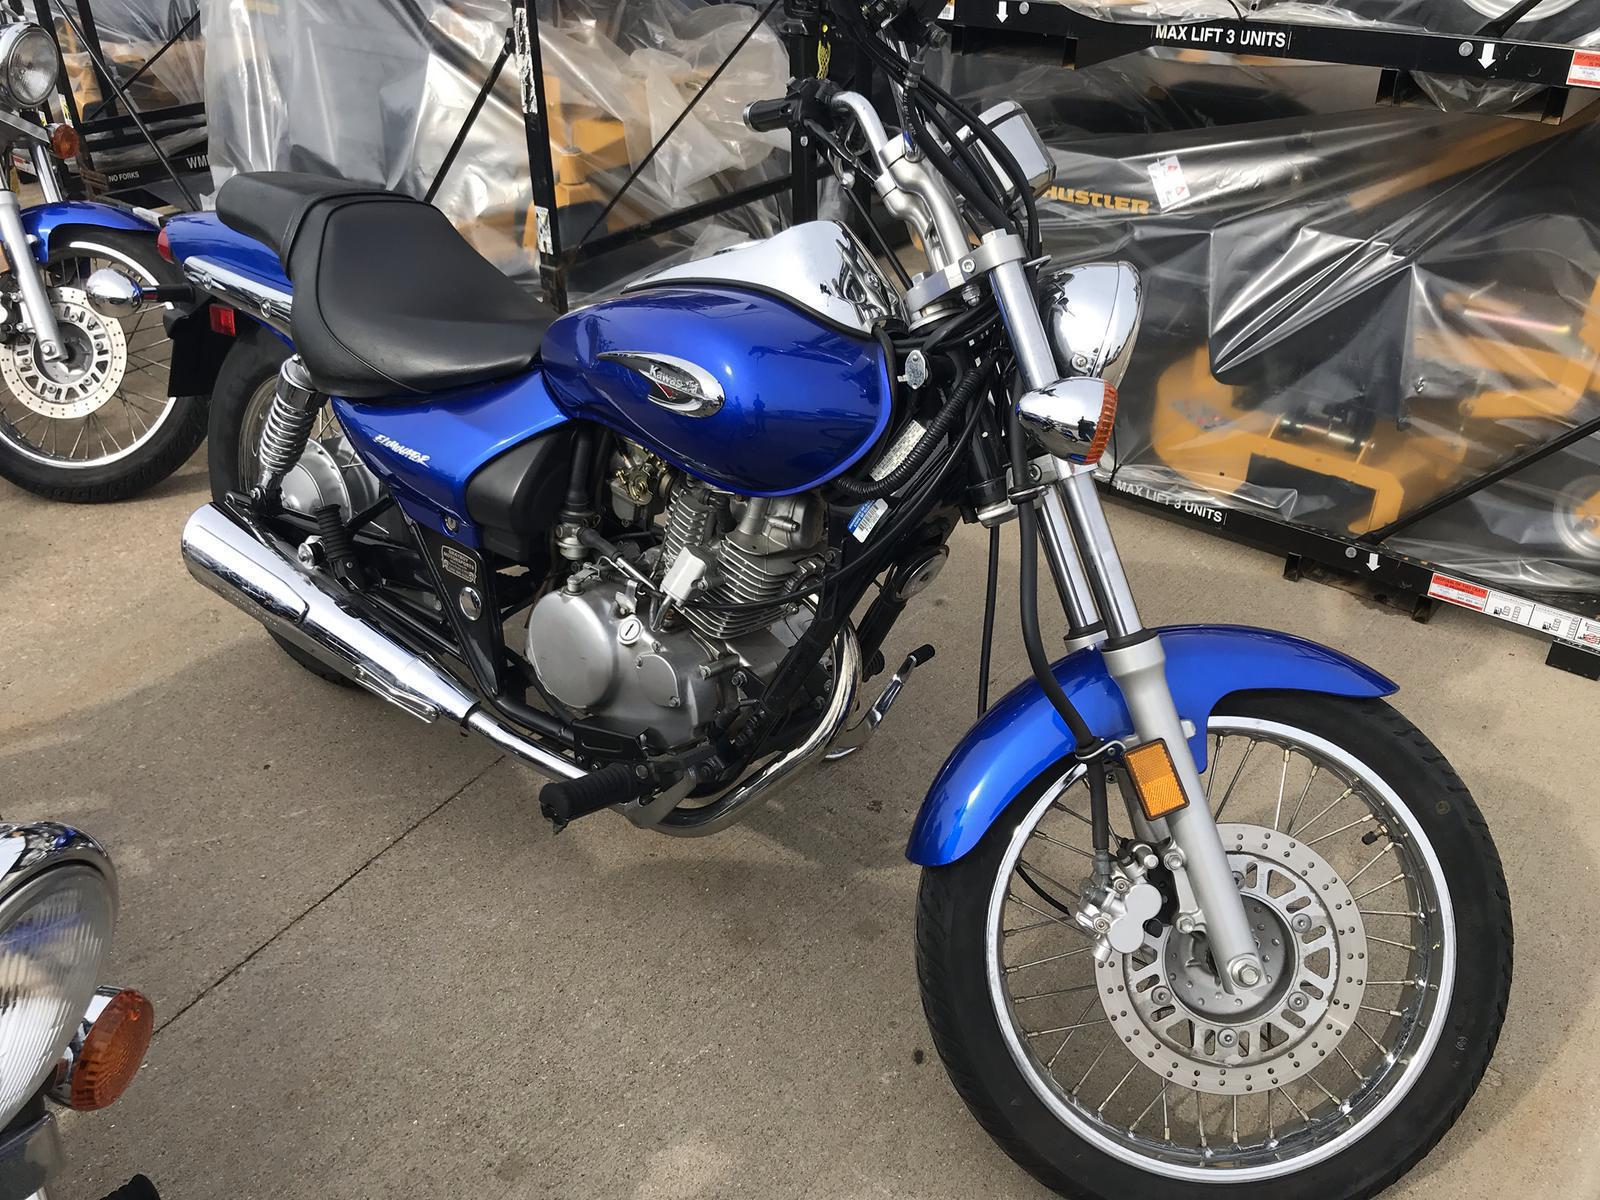 2006 Kawasaki Eliminator 125 For Sale In Hartford Il Midwest Motor